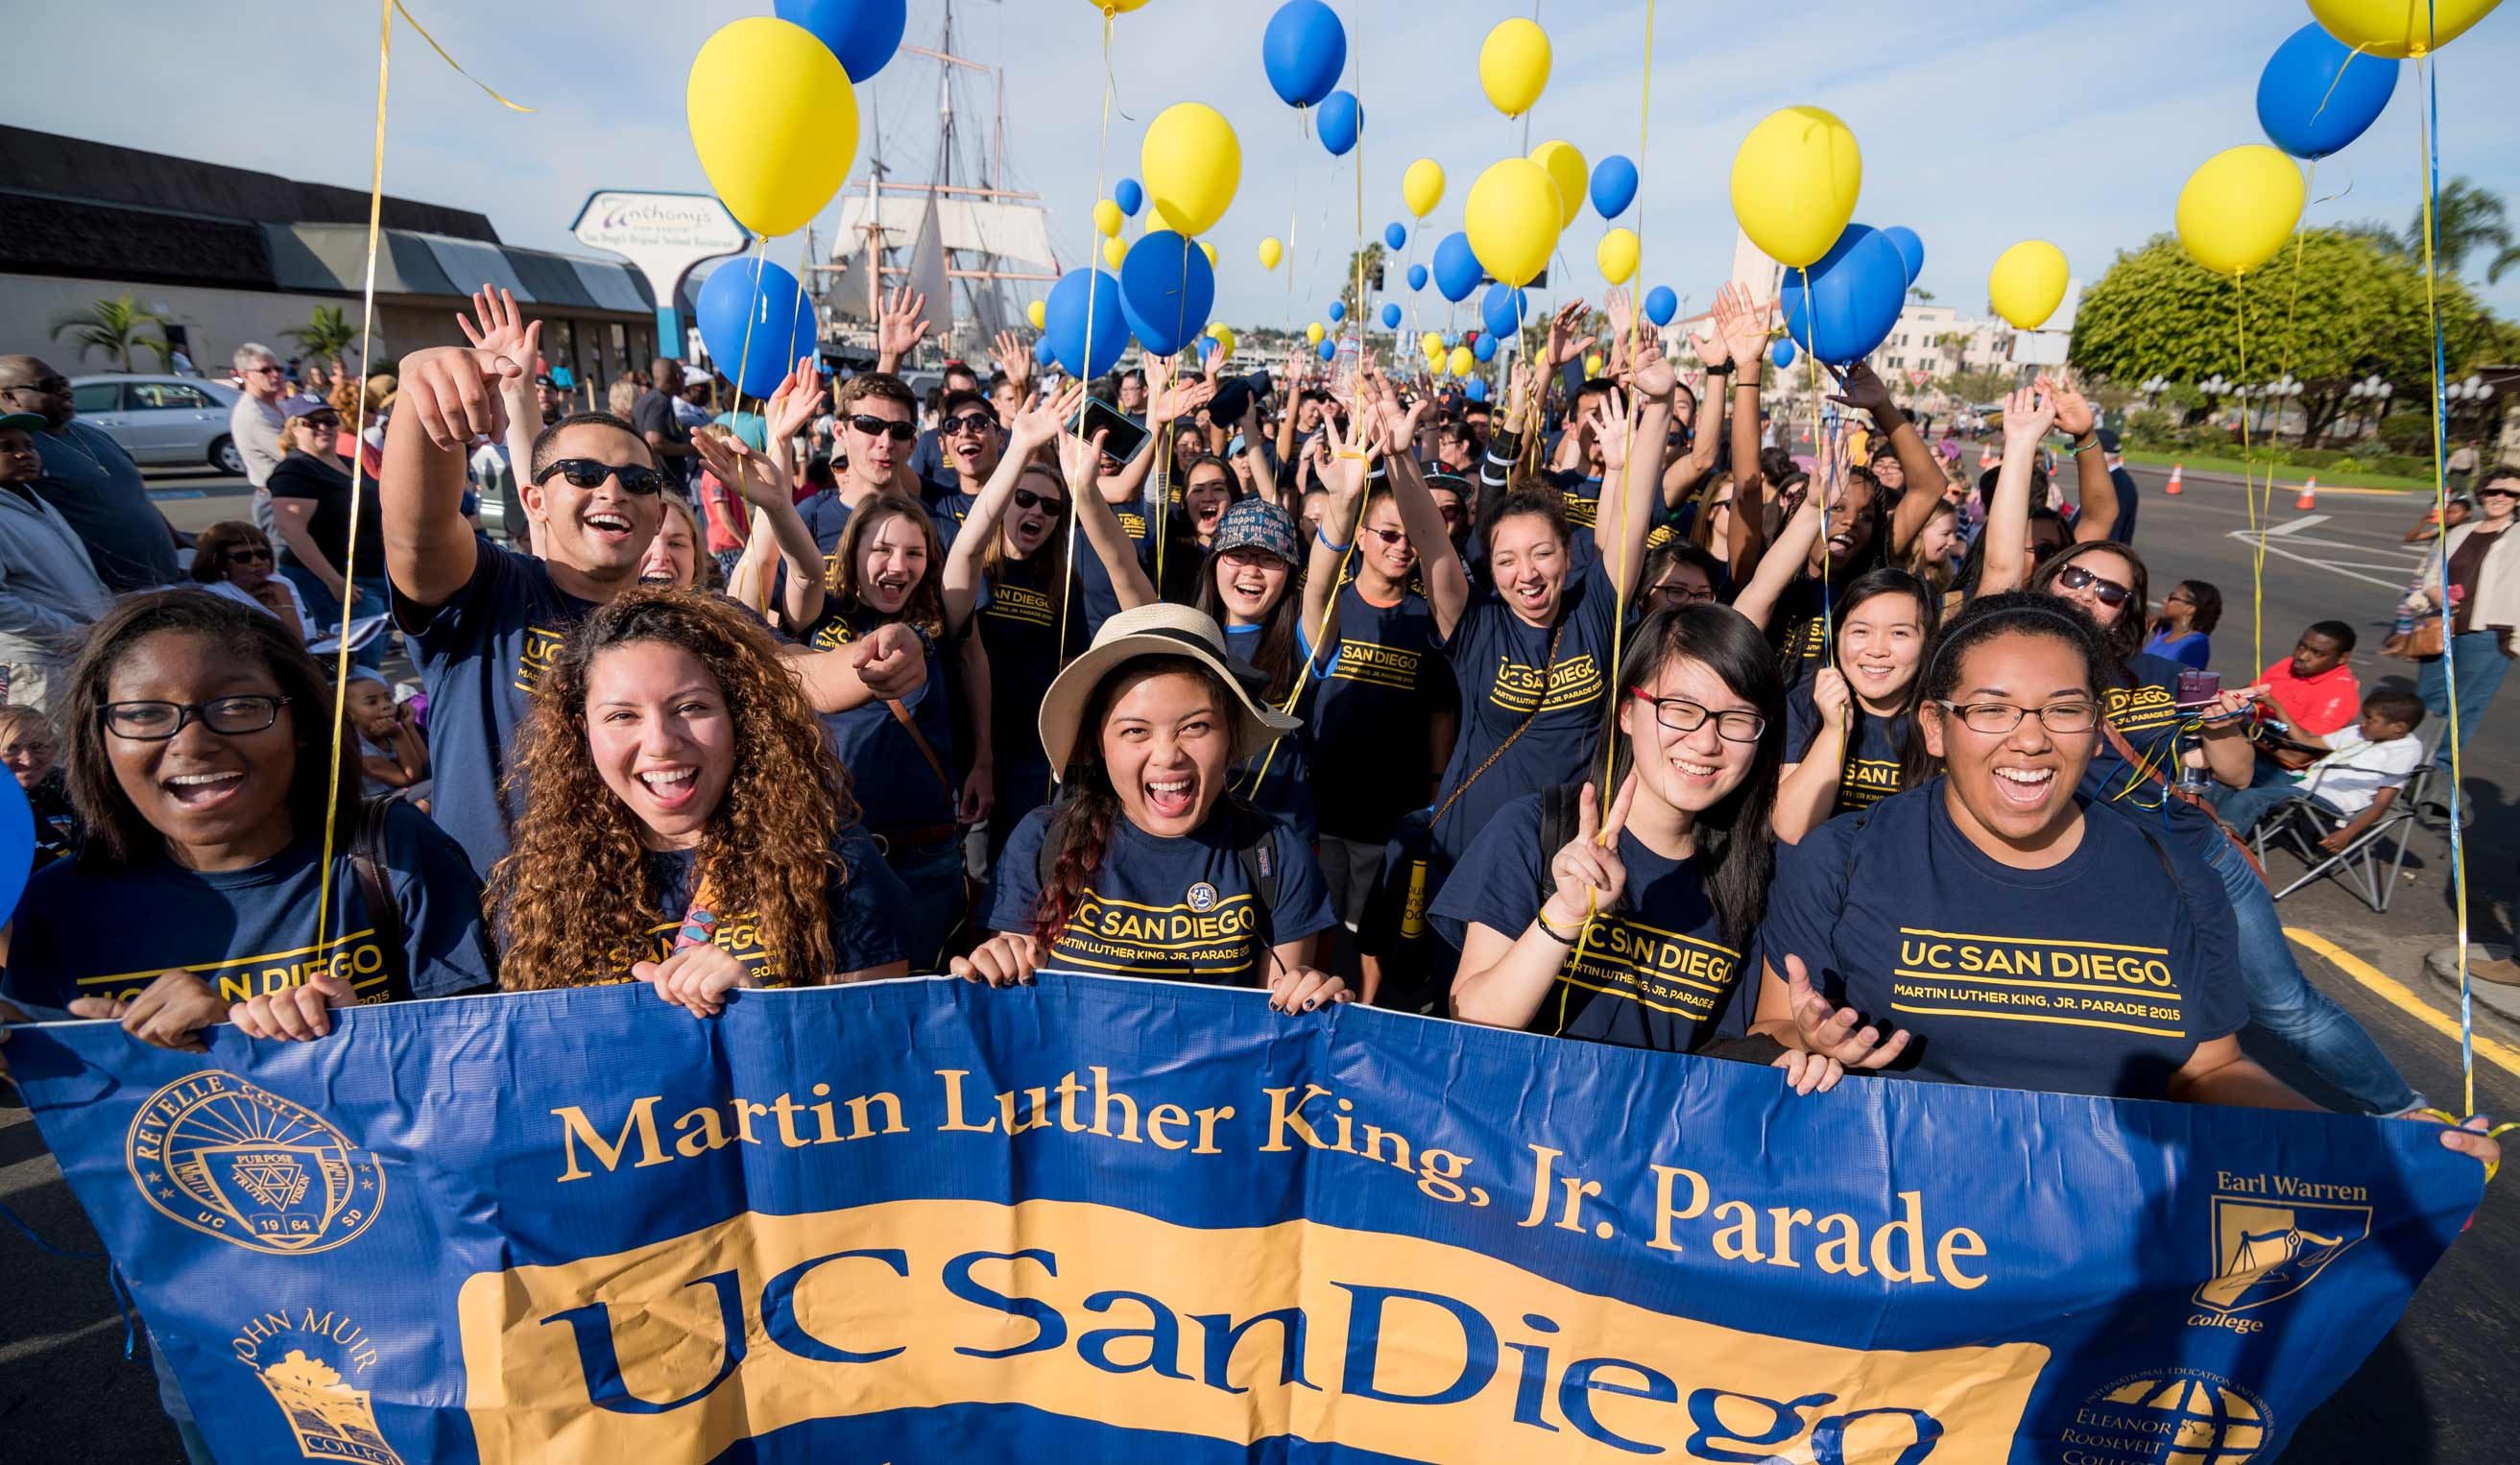 2015 Martin Luther King Jr. Parade and Day of Service